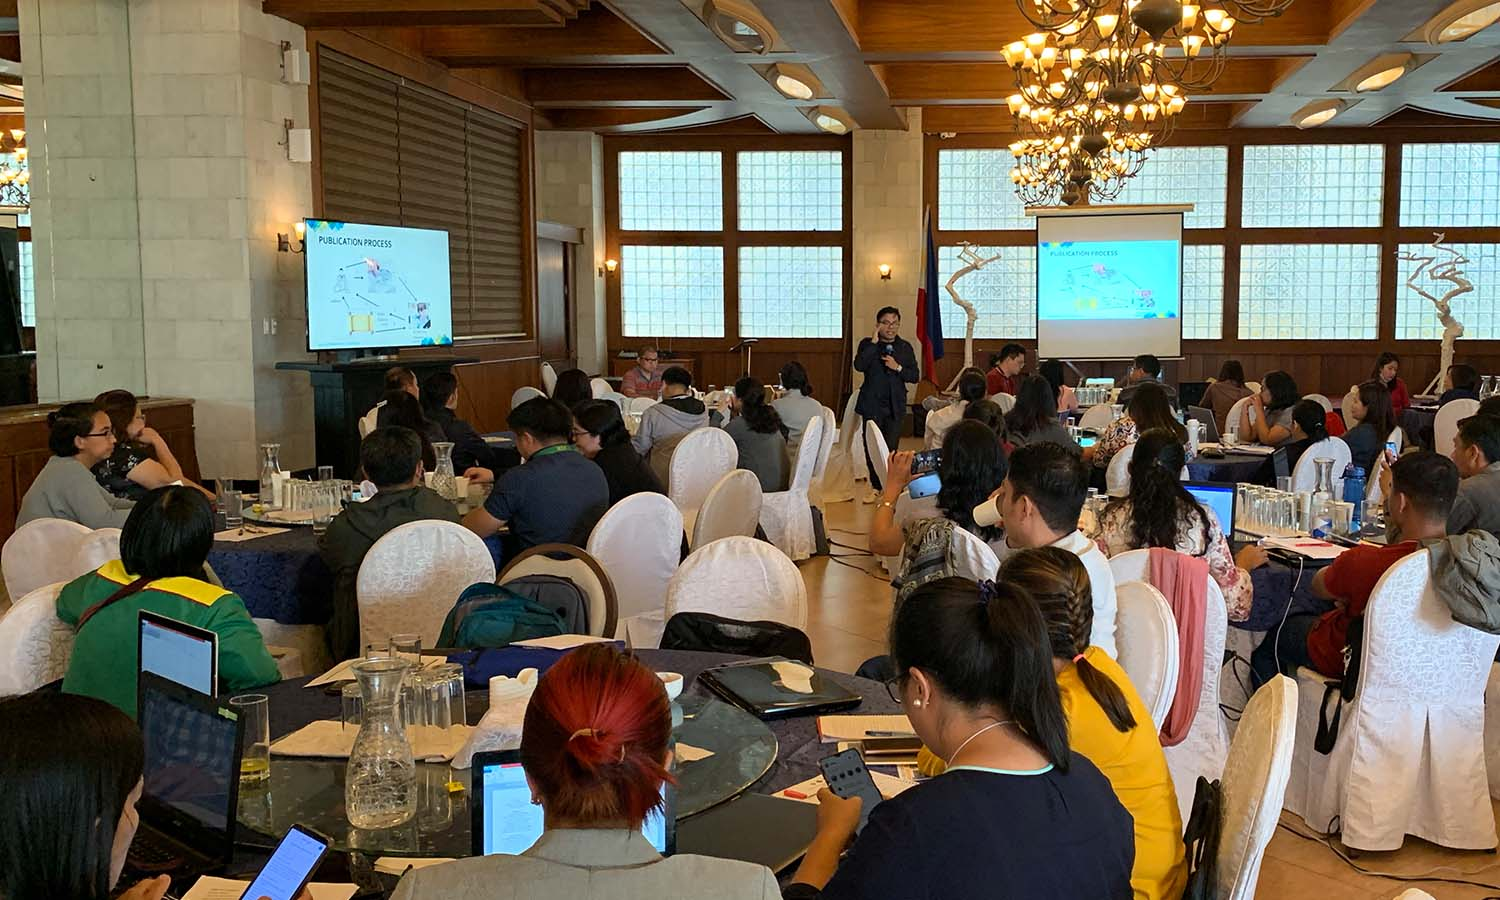 CHED-JESAM journal writing workshop in Baguio City nets highest number of participants